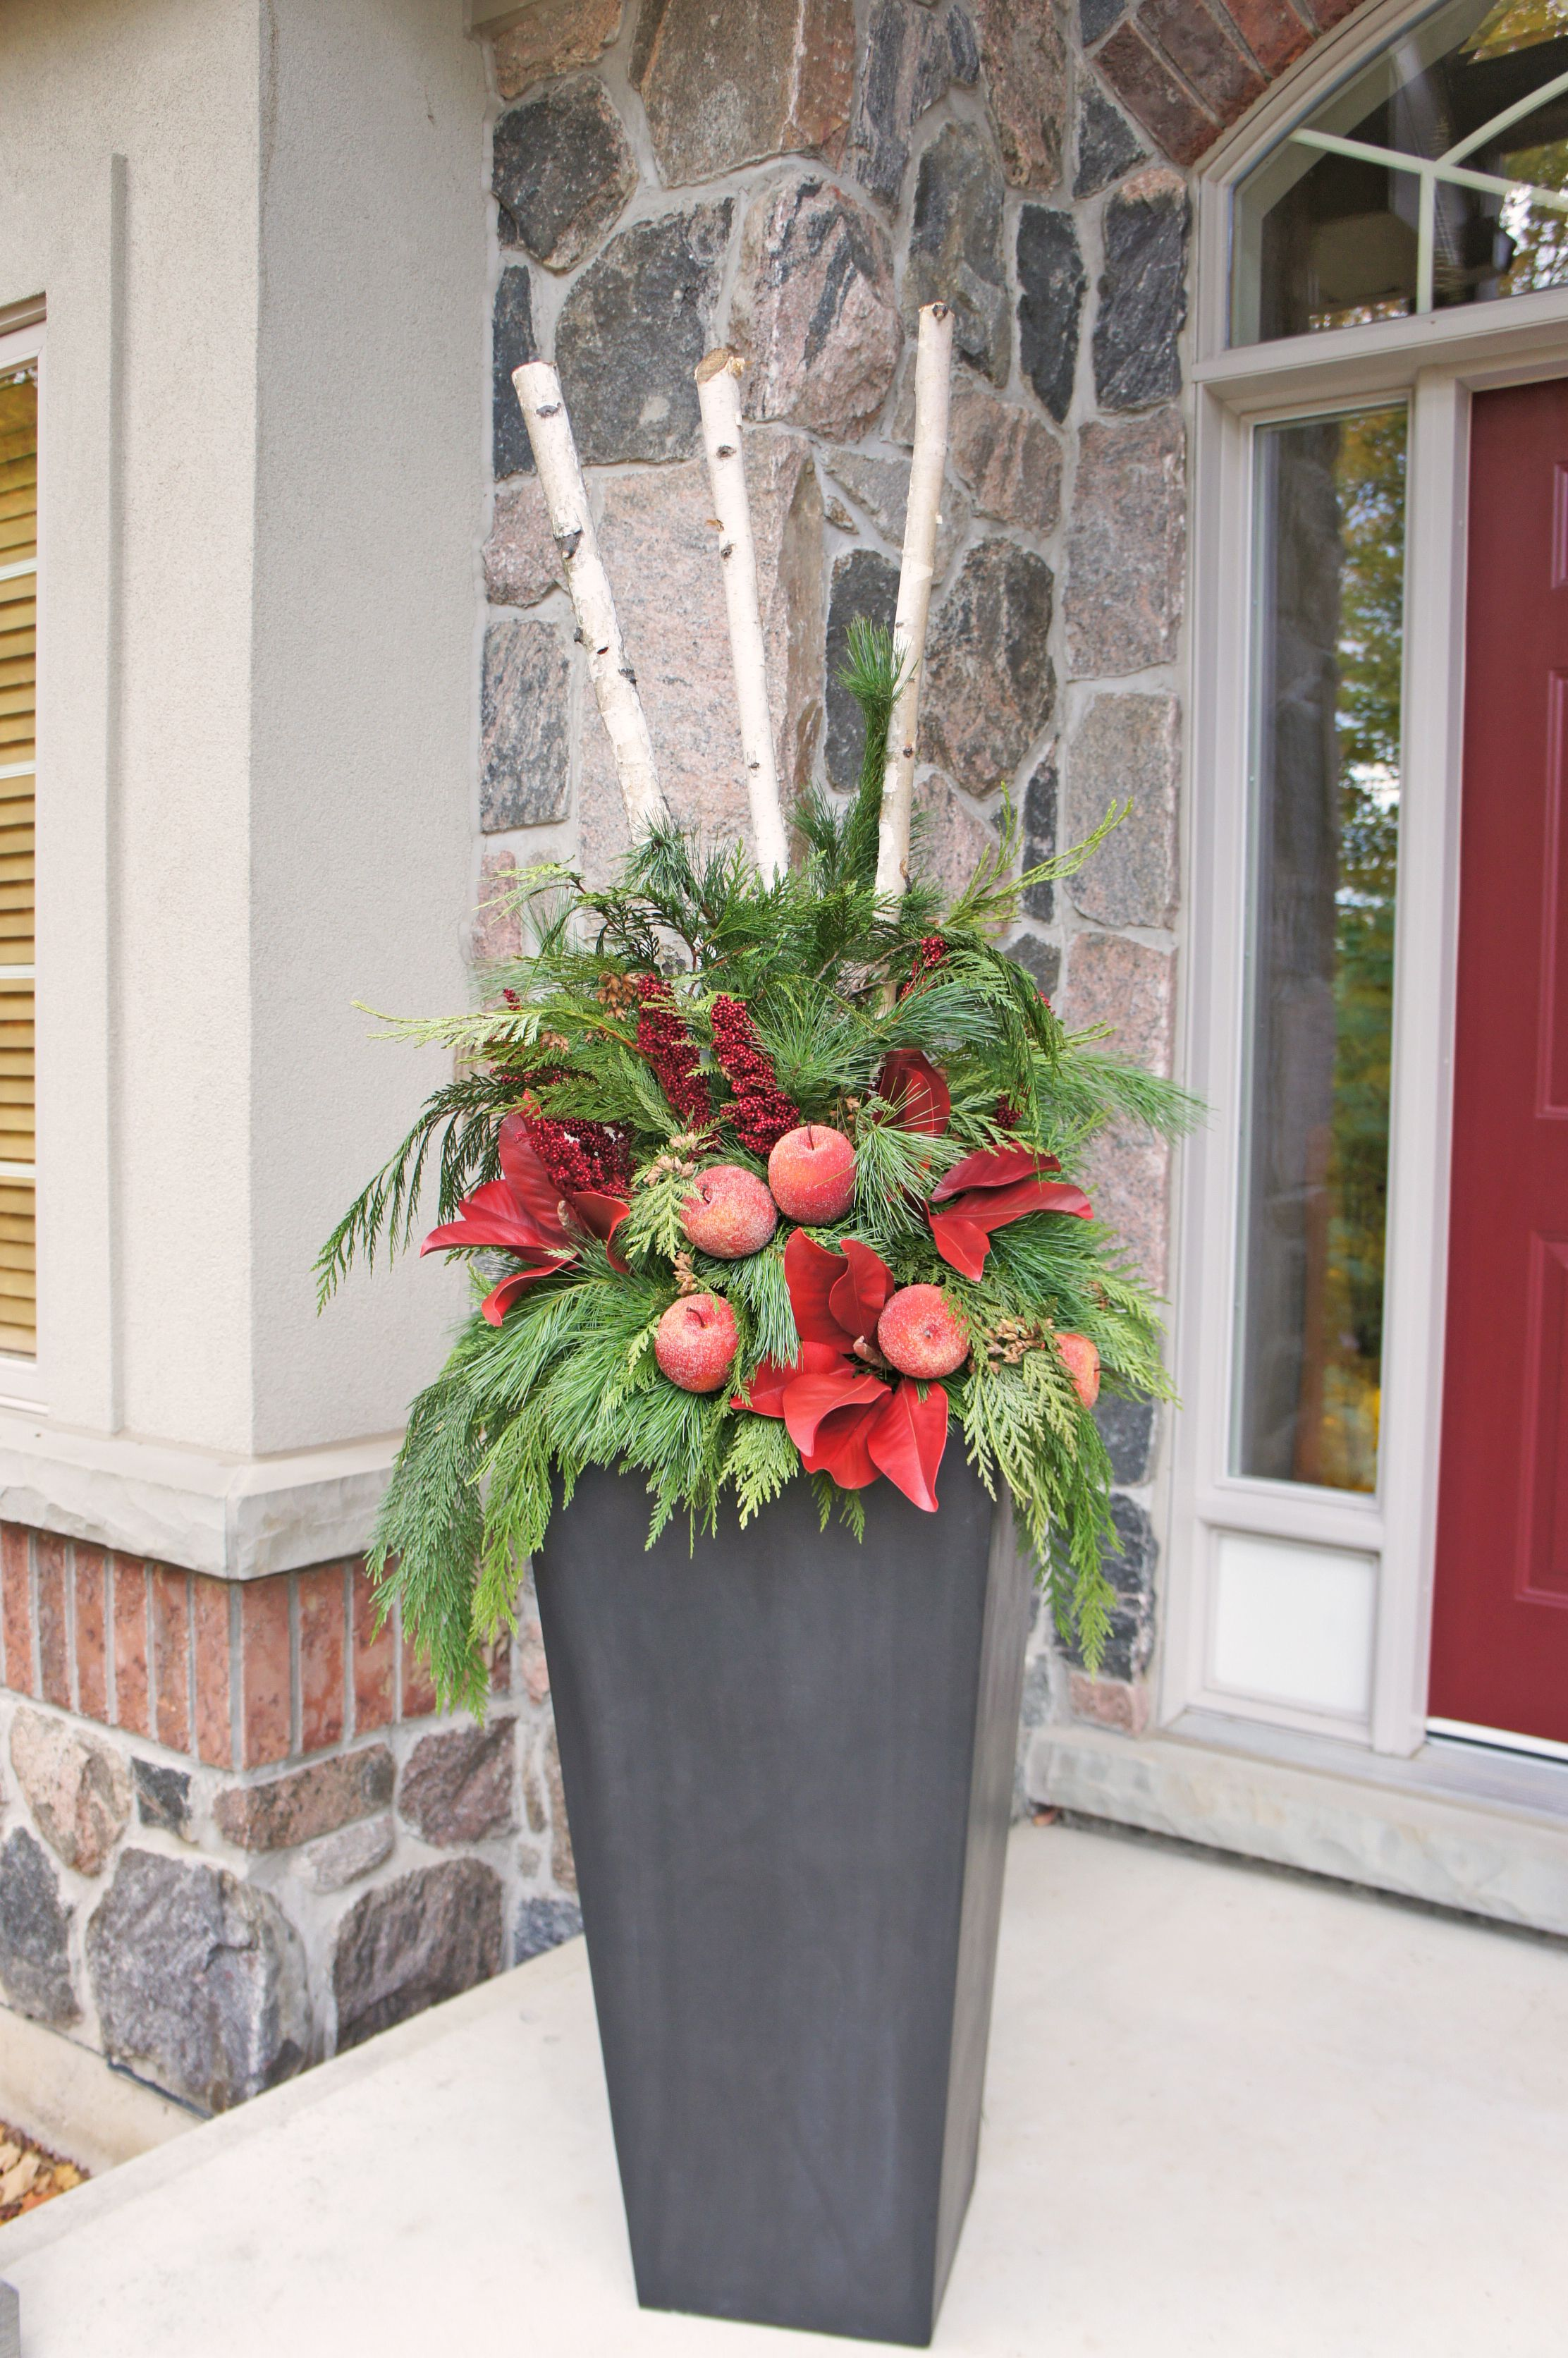 Outdoor Christmas Planterperfect for zinc planters